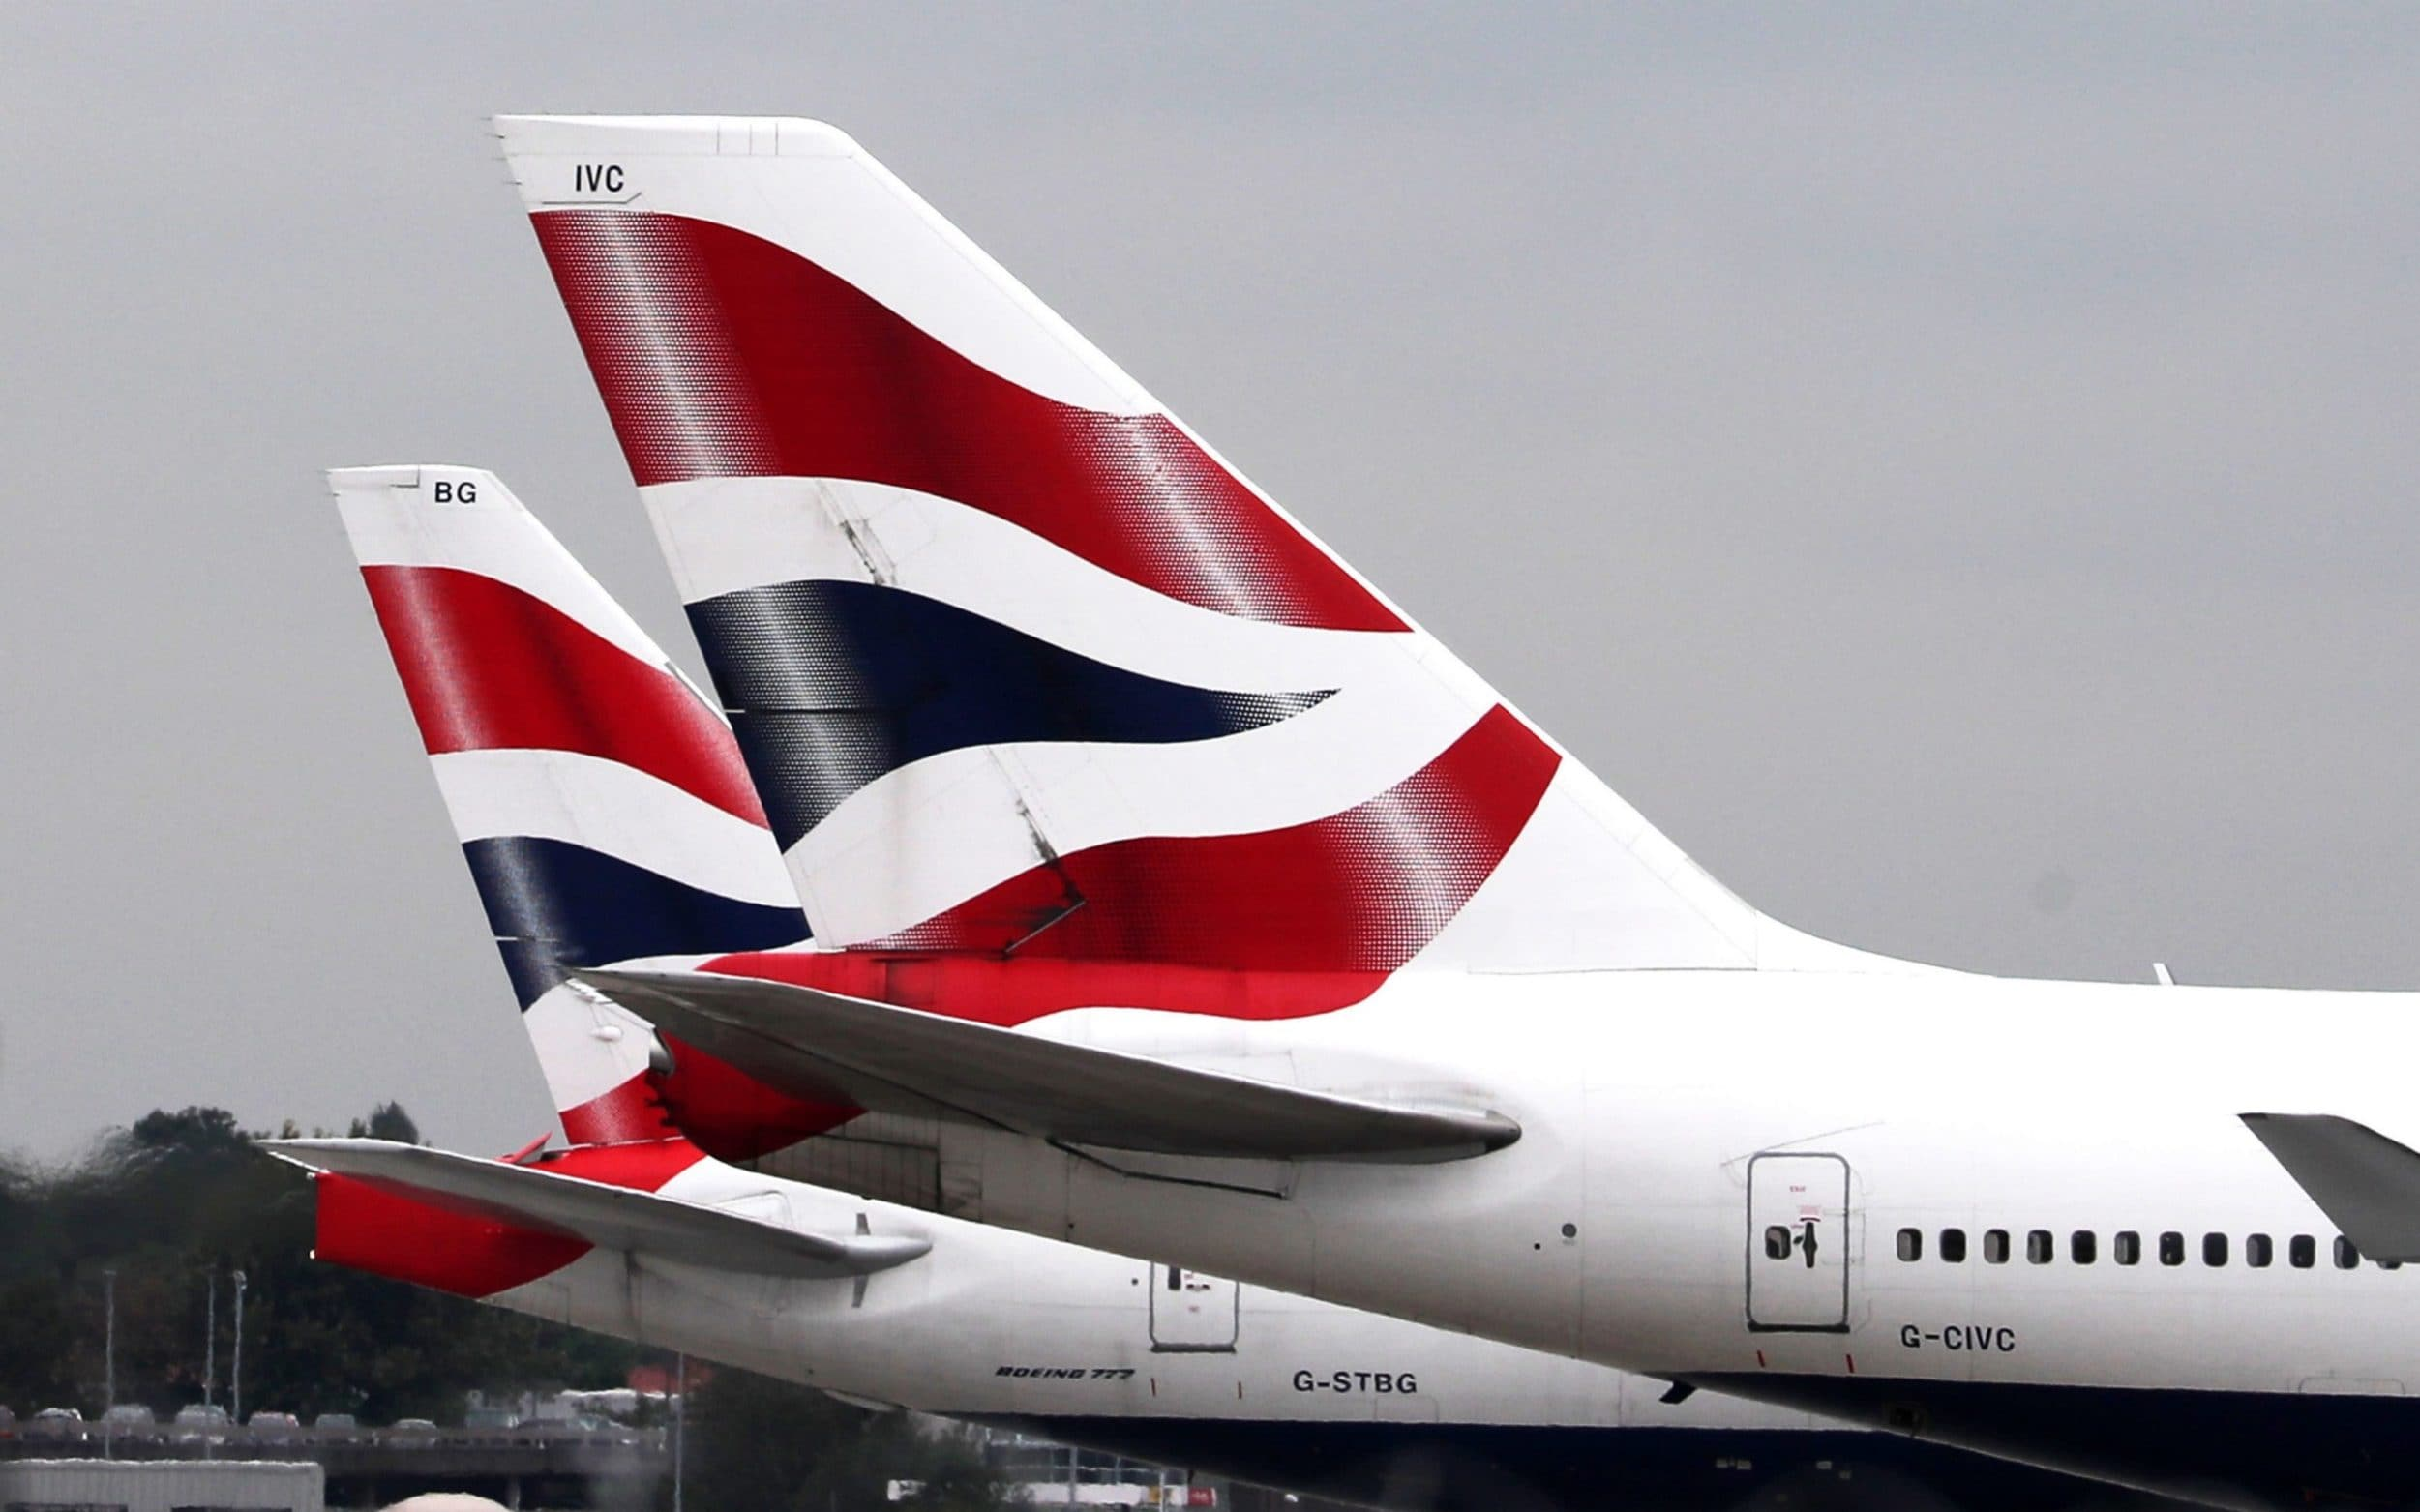 British Airways has begun cancelling hundreds of flights ahead of next strike by pilots